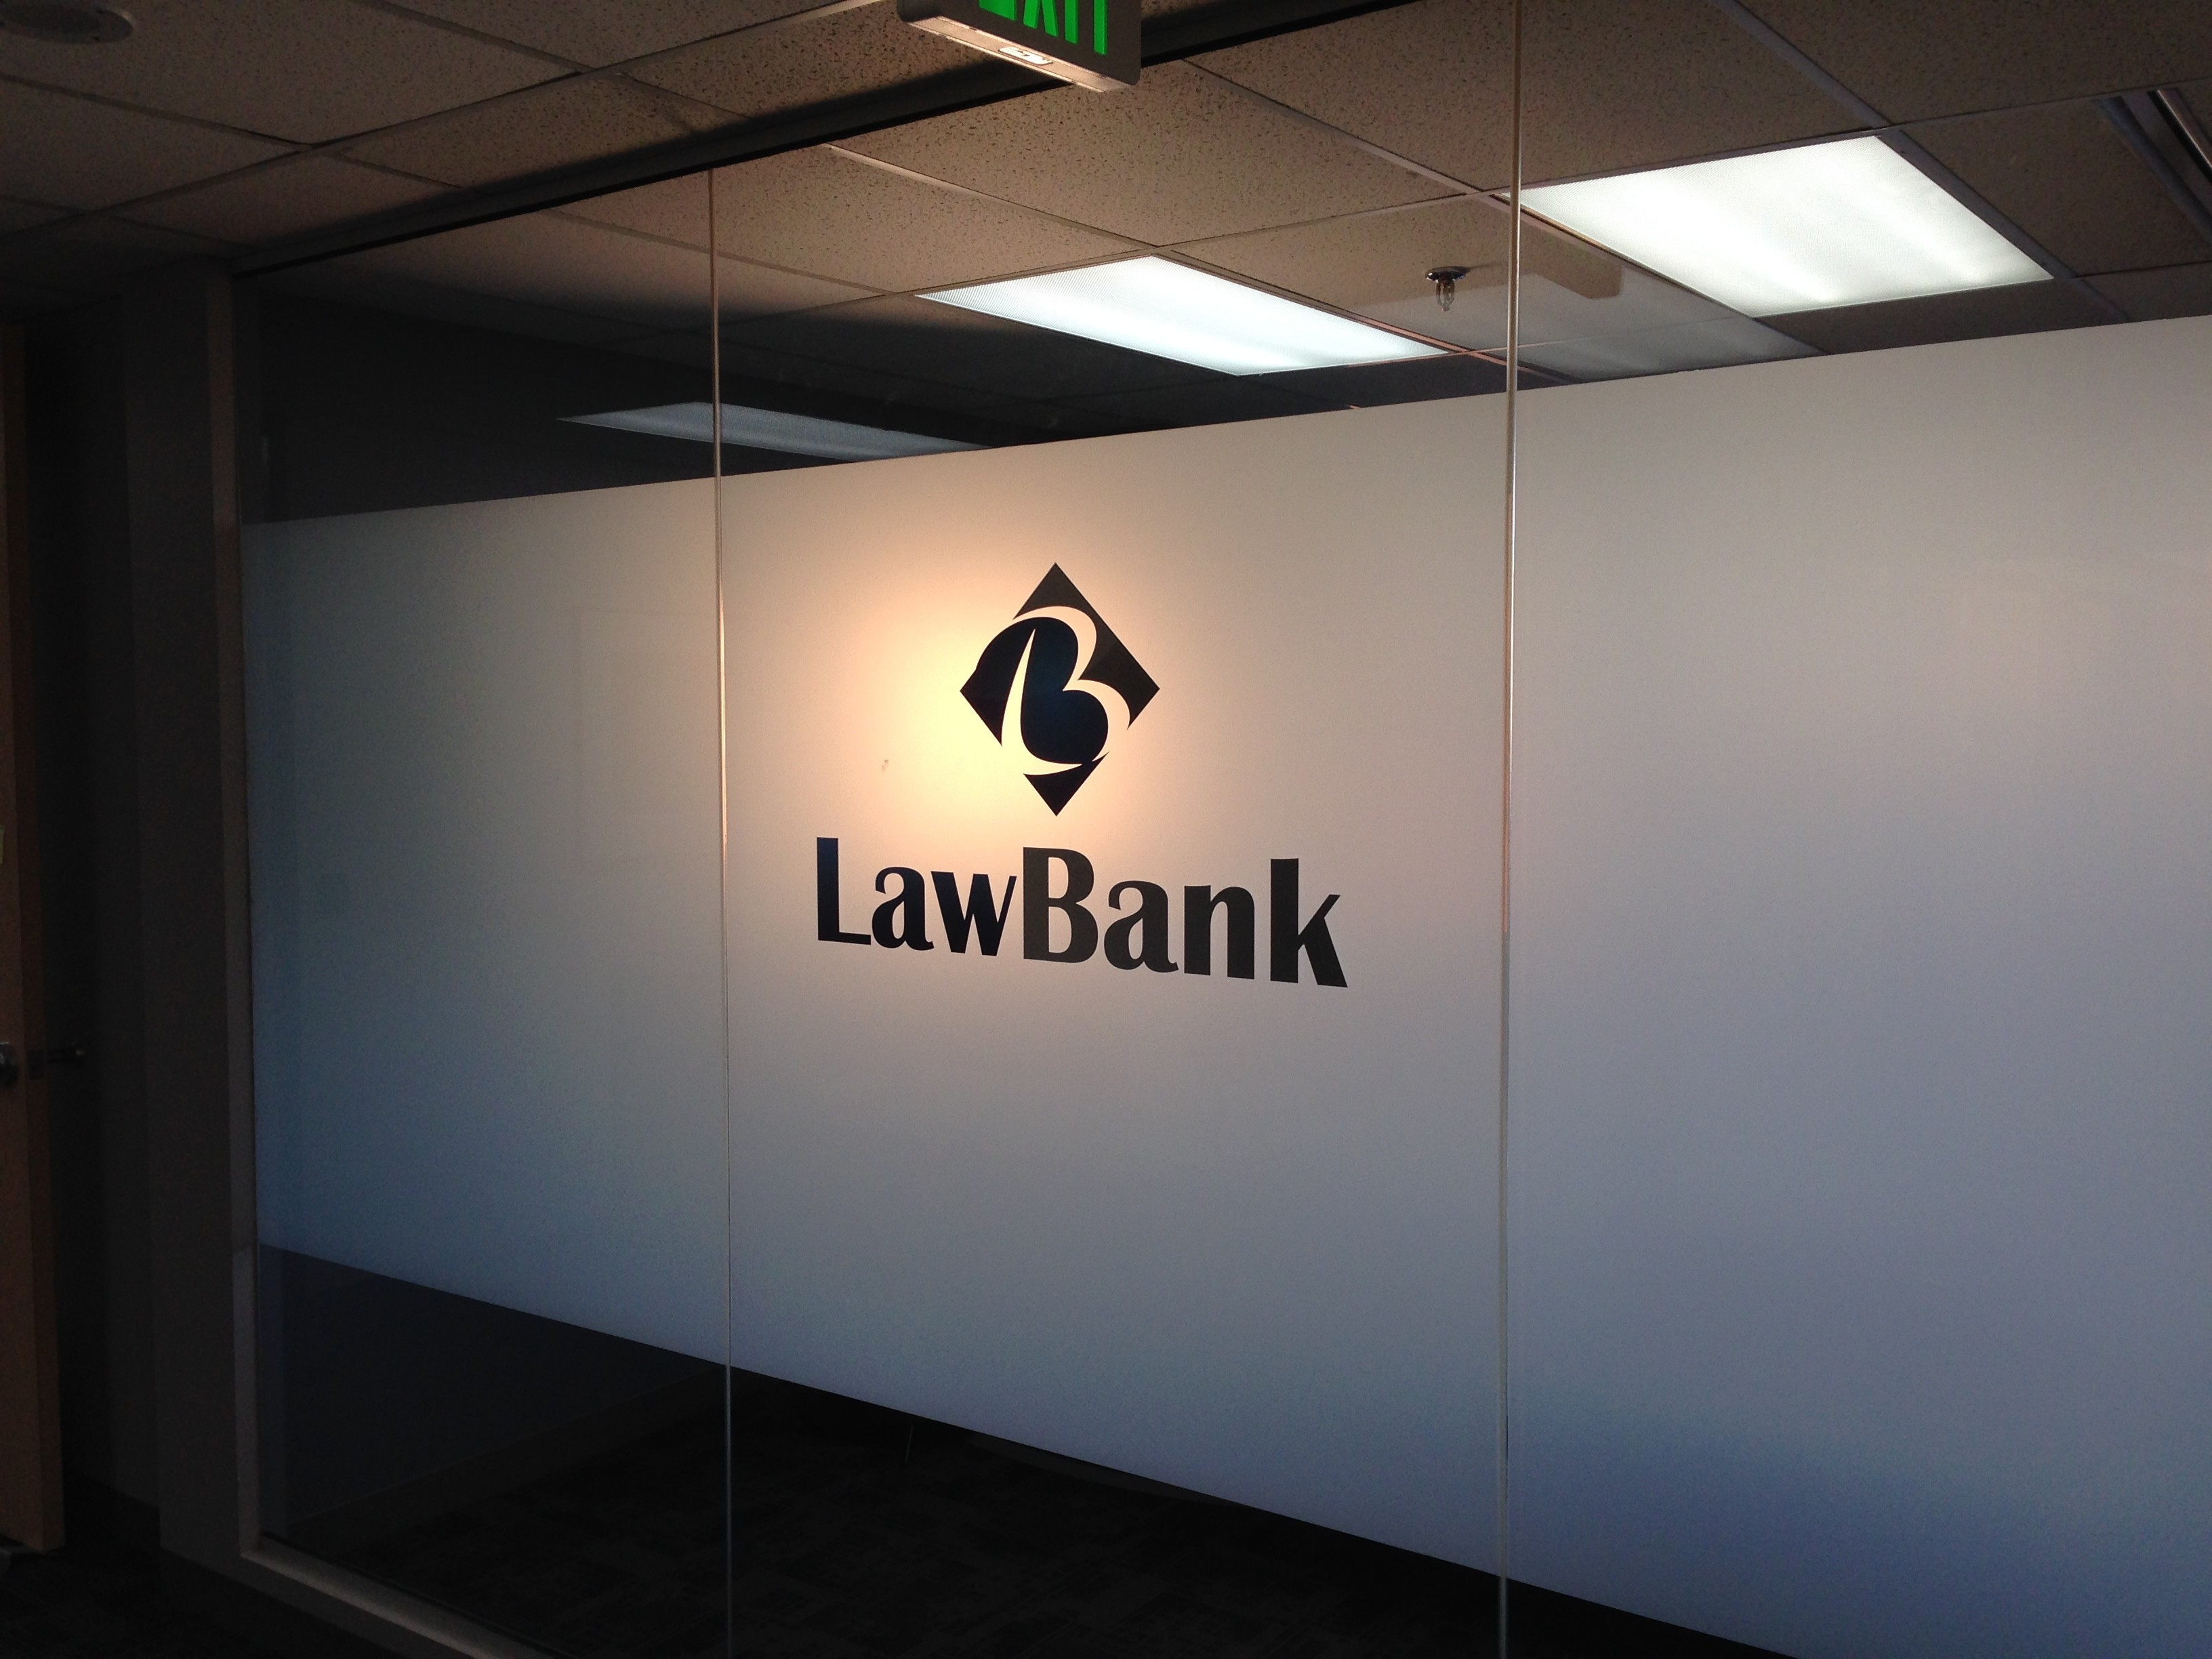 LawBank Amenities – A Modern Law Office without the Typical Law Office Overhead